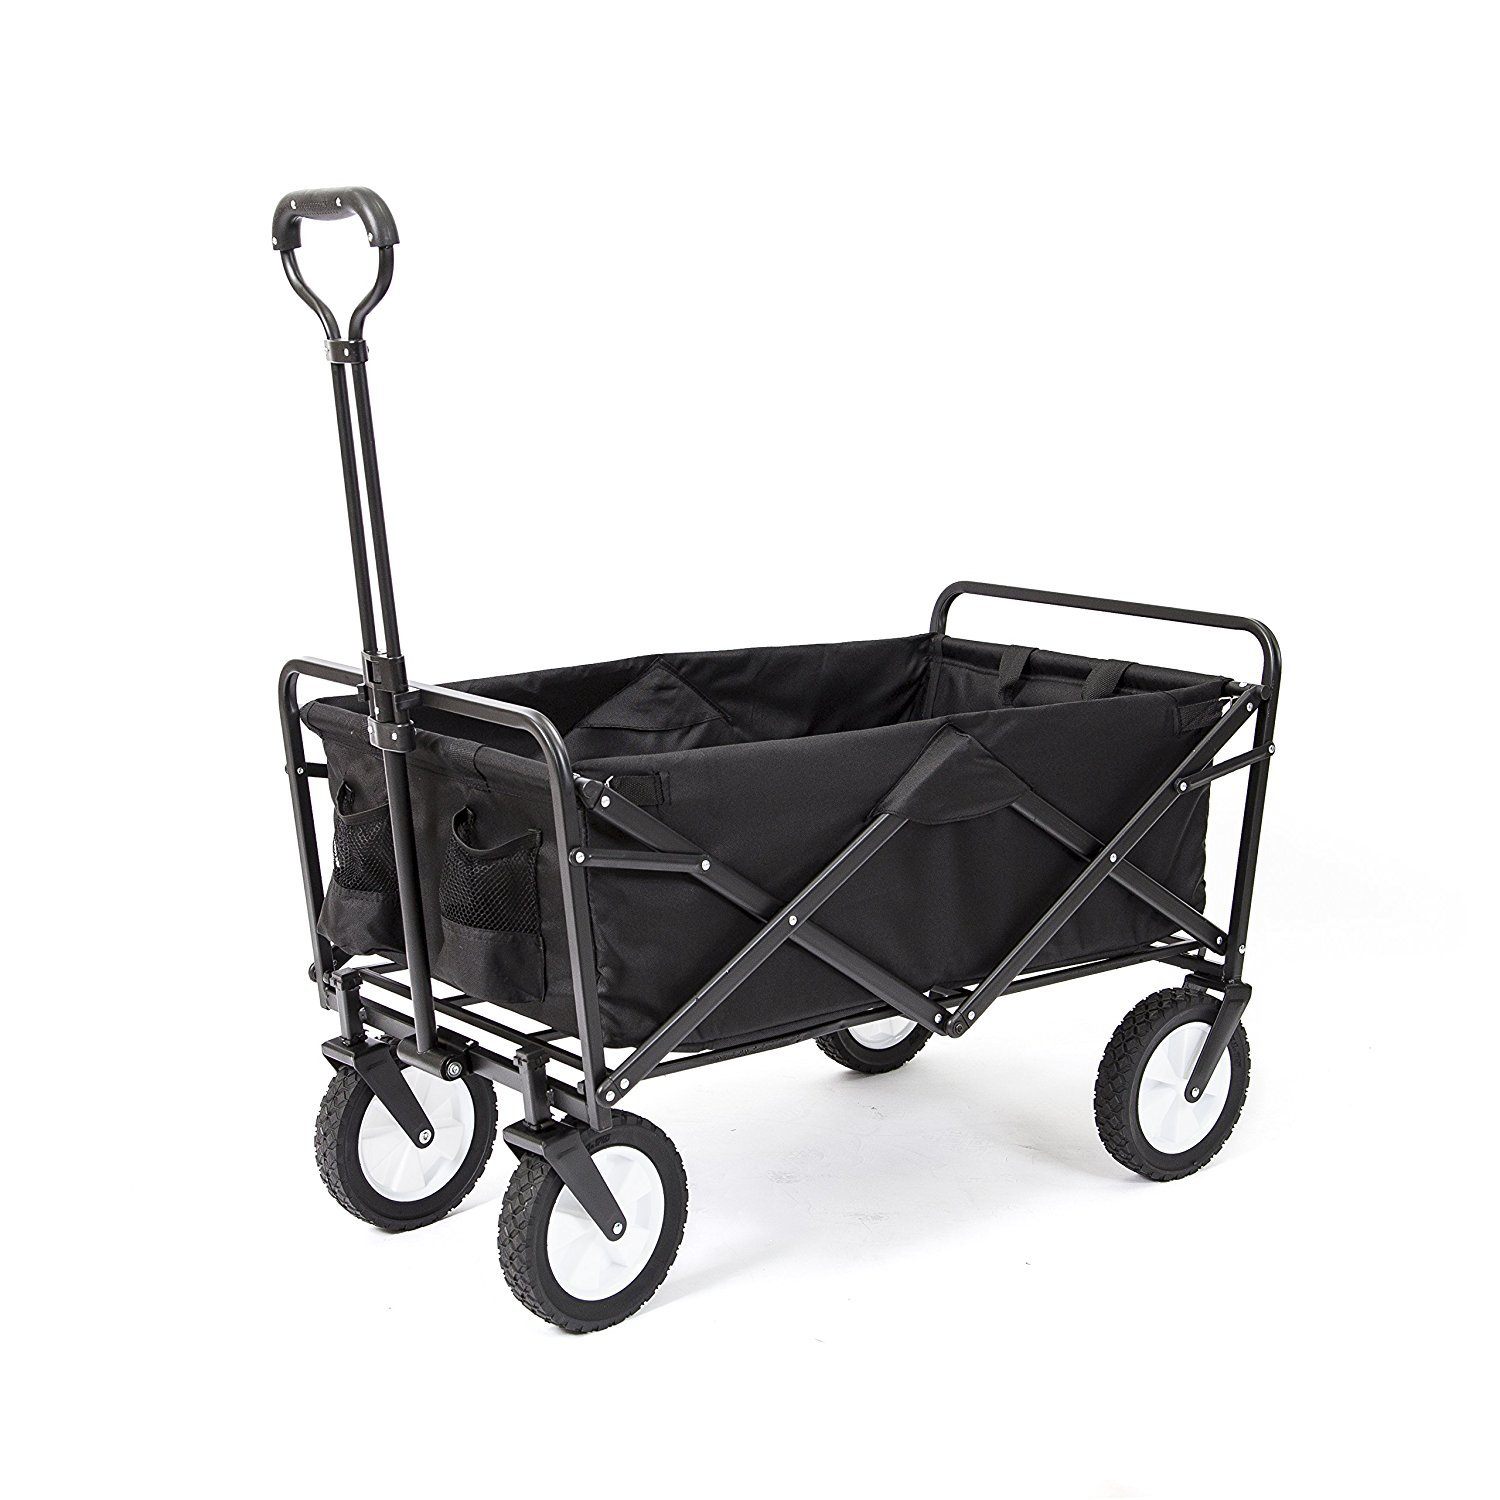 MEDA Collapsible Folding Outdoor Utility Wagon Cart (Black)